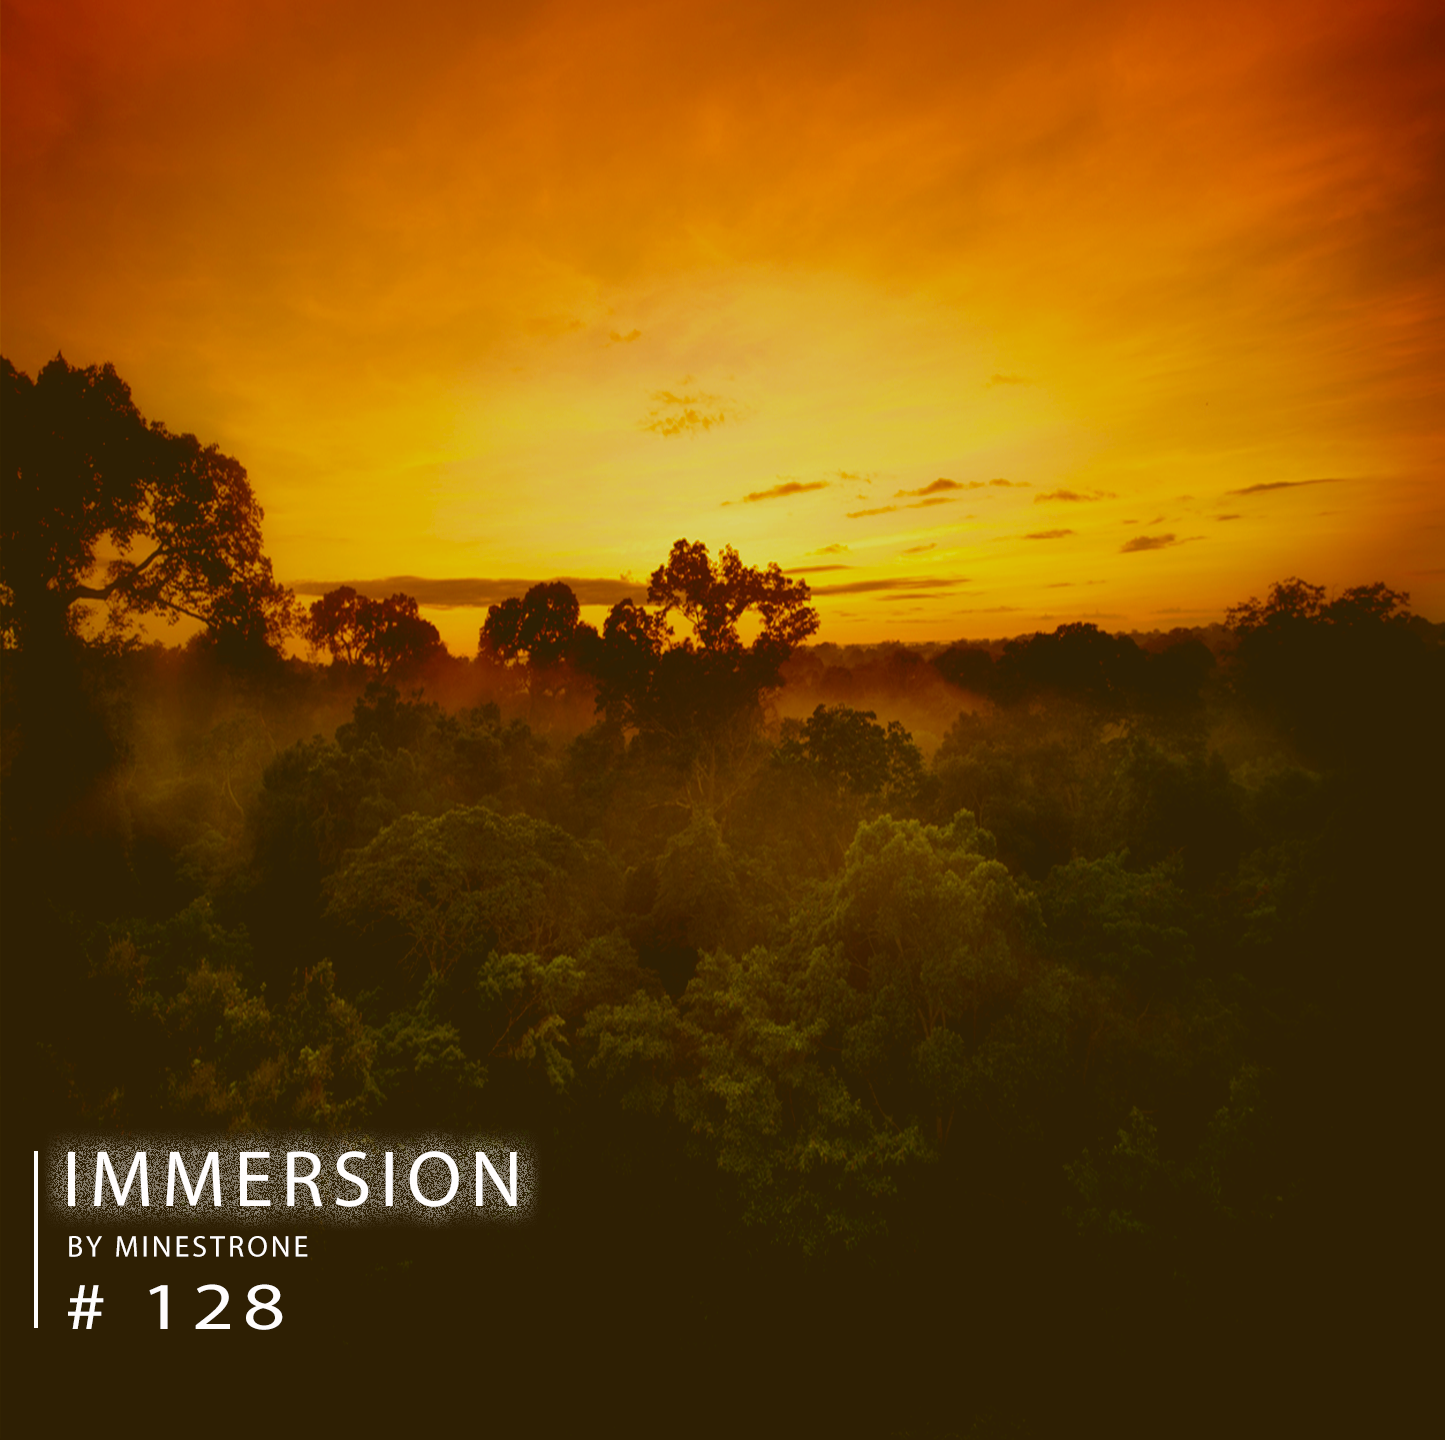 Immersion :: Episode 128 (aired on November 18th, 2019) banner logo